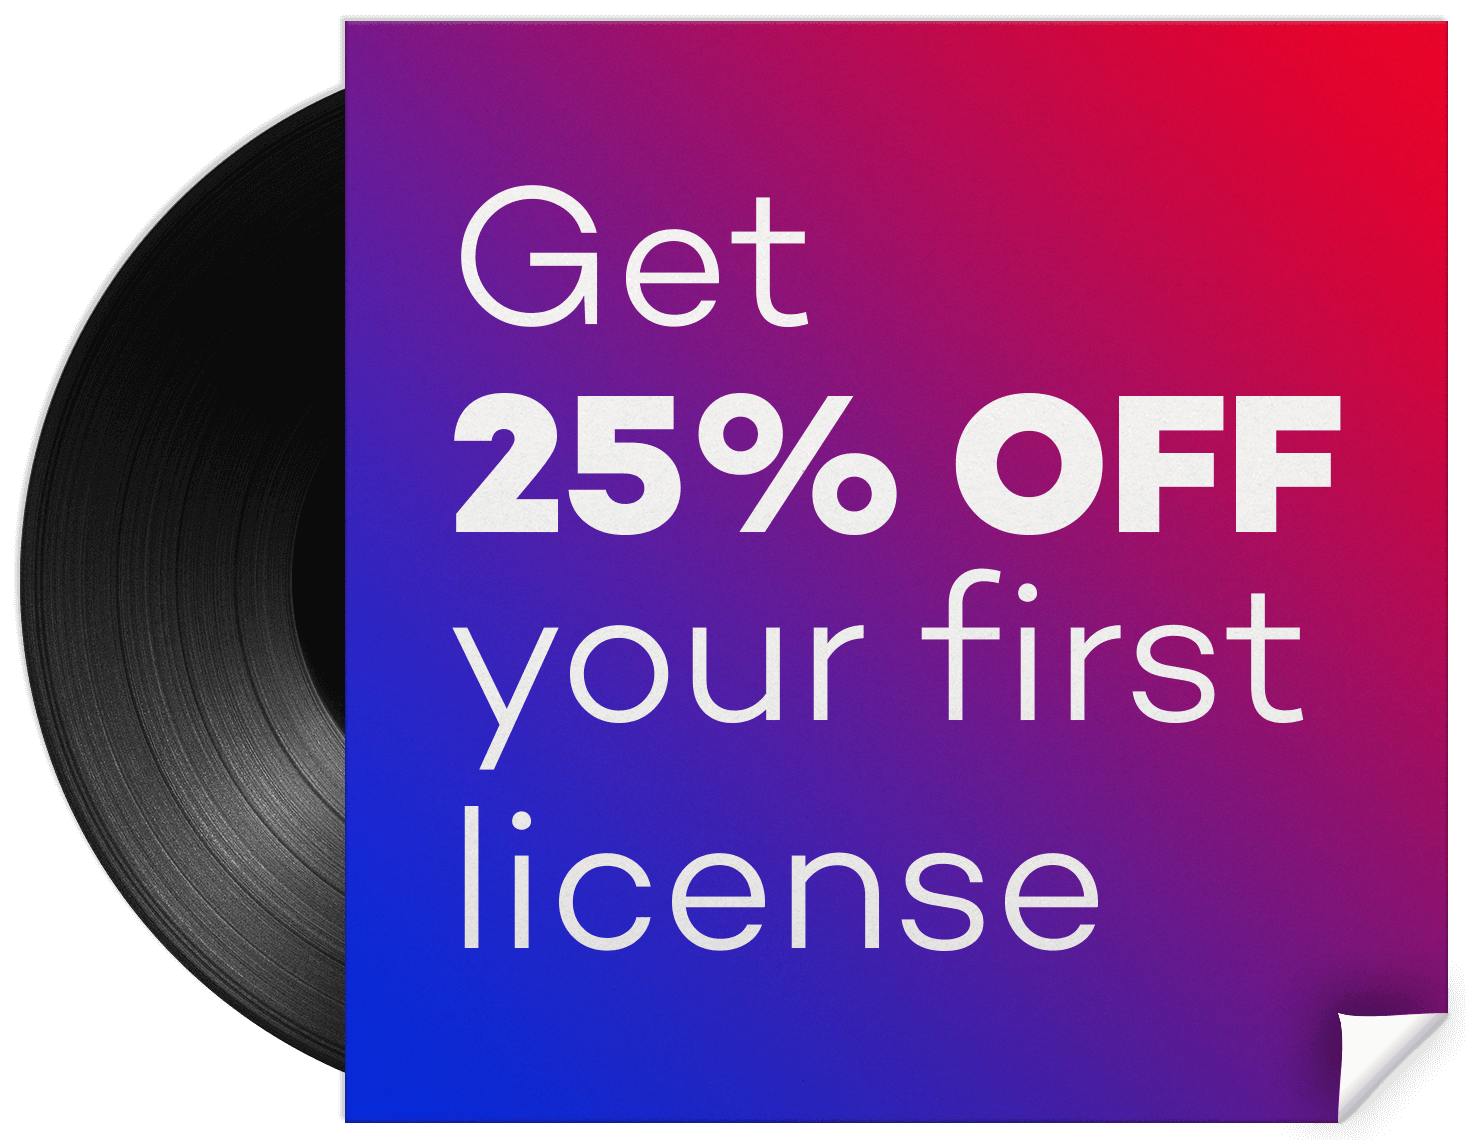 Get 25% off your first license